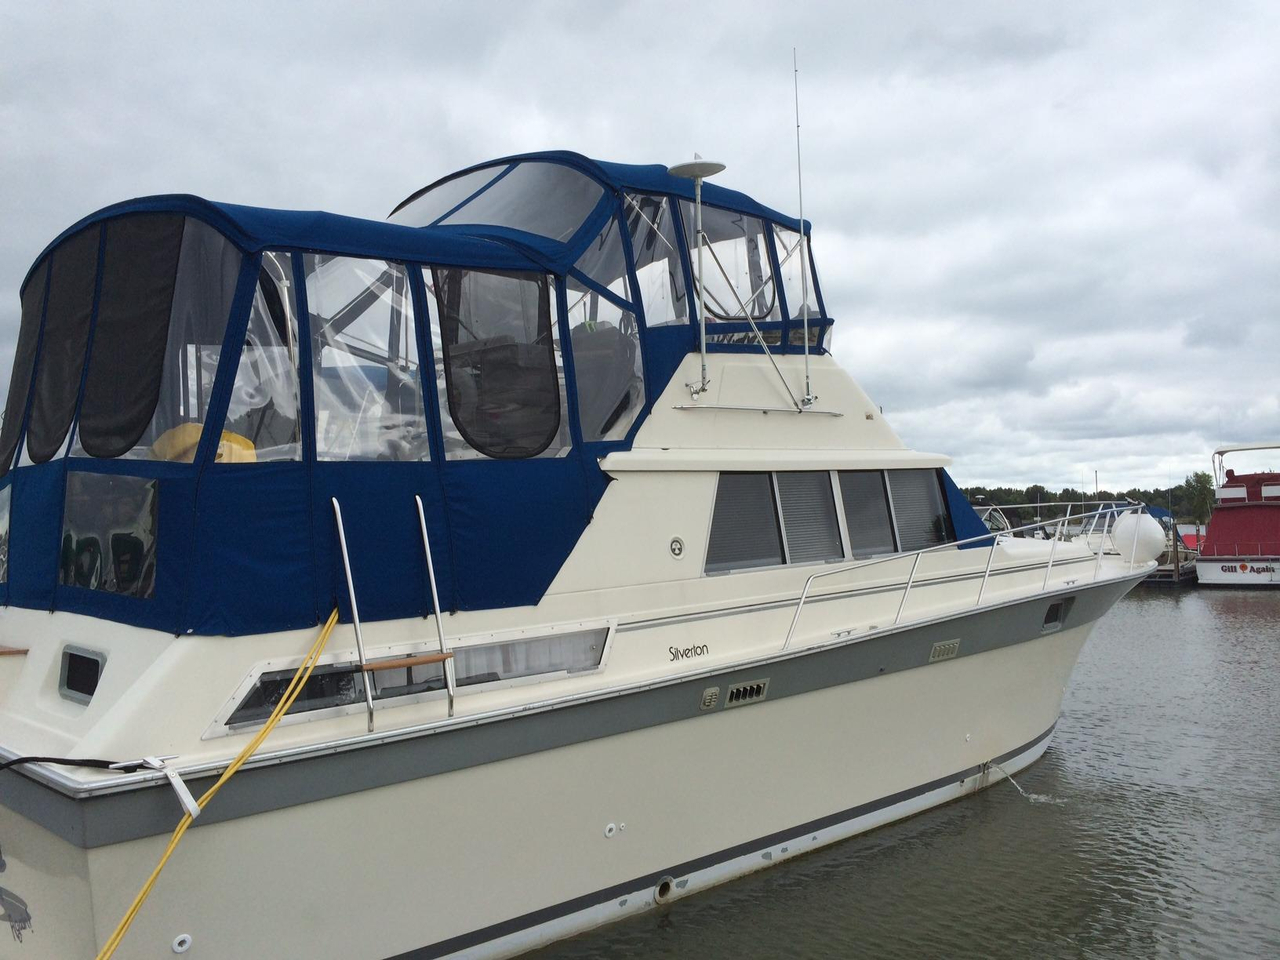 1988 used silverton 40 aft cabin motor yacht for sale for Silverton motor yachts for sale